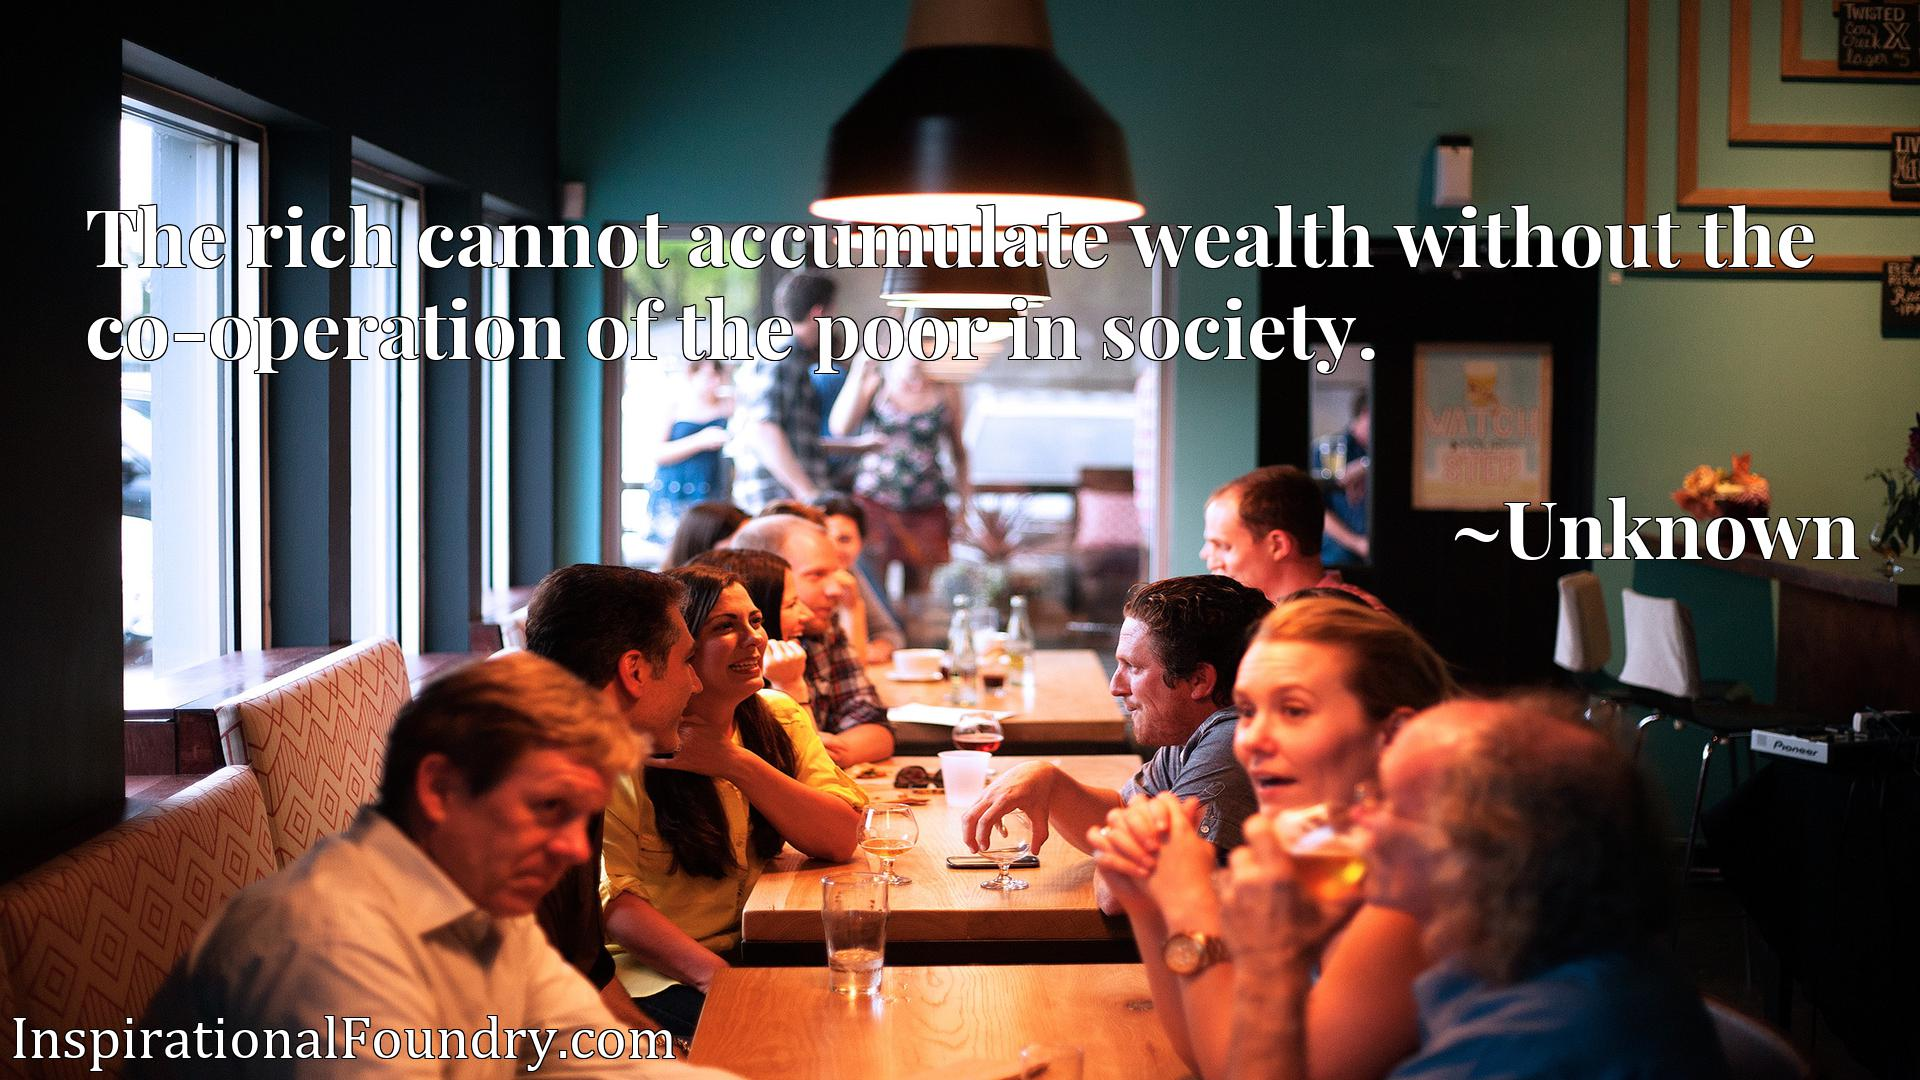 The rich cannot accumulate wealth without the co-operation of the poor in society.